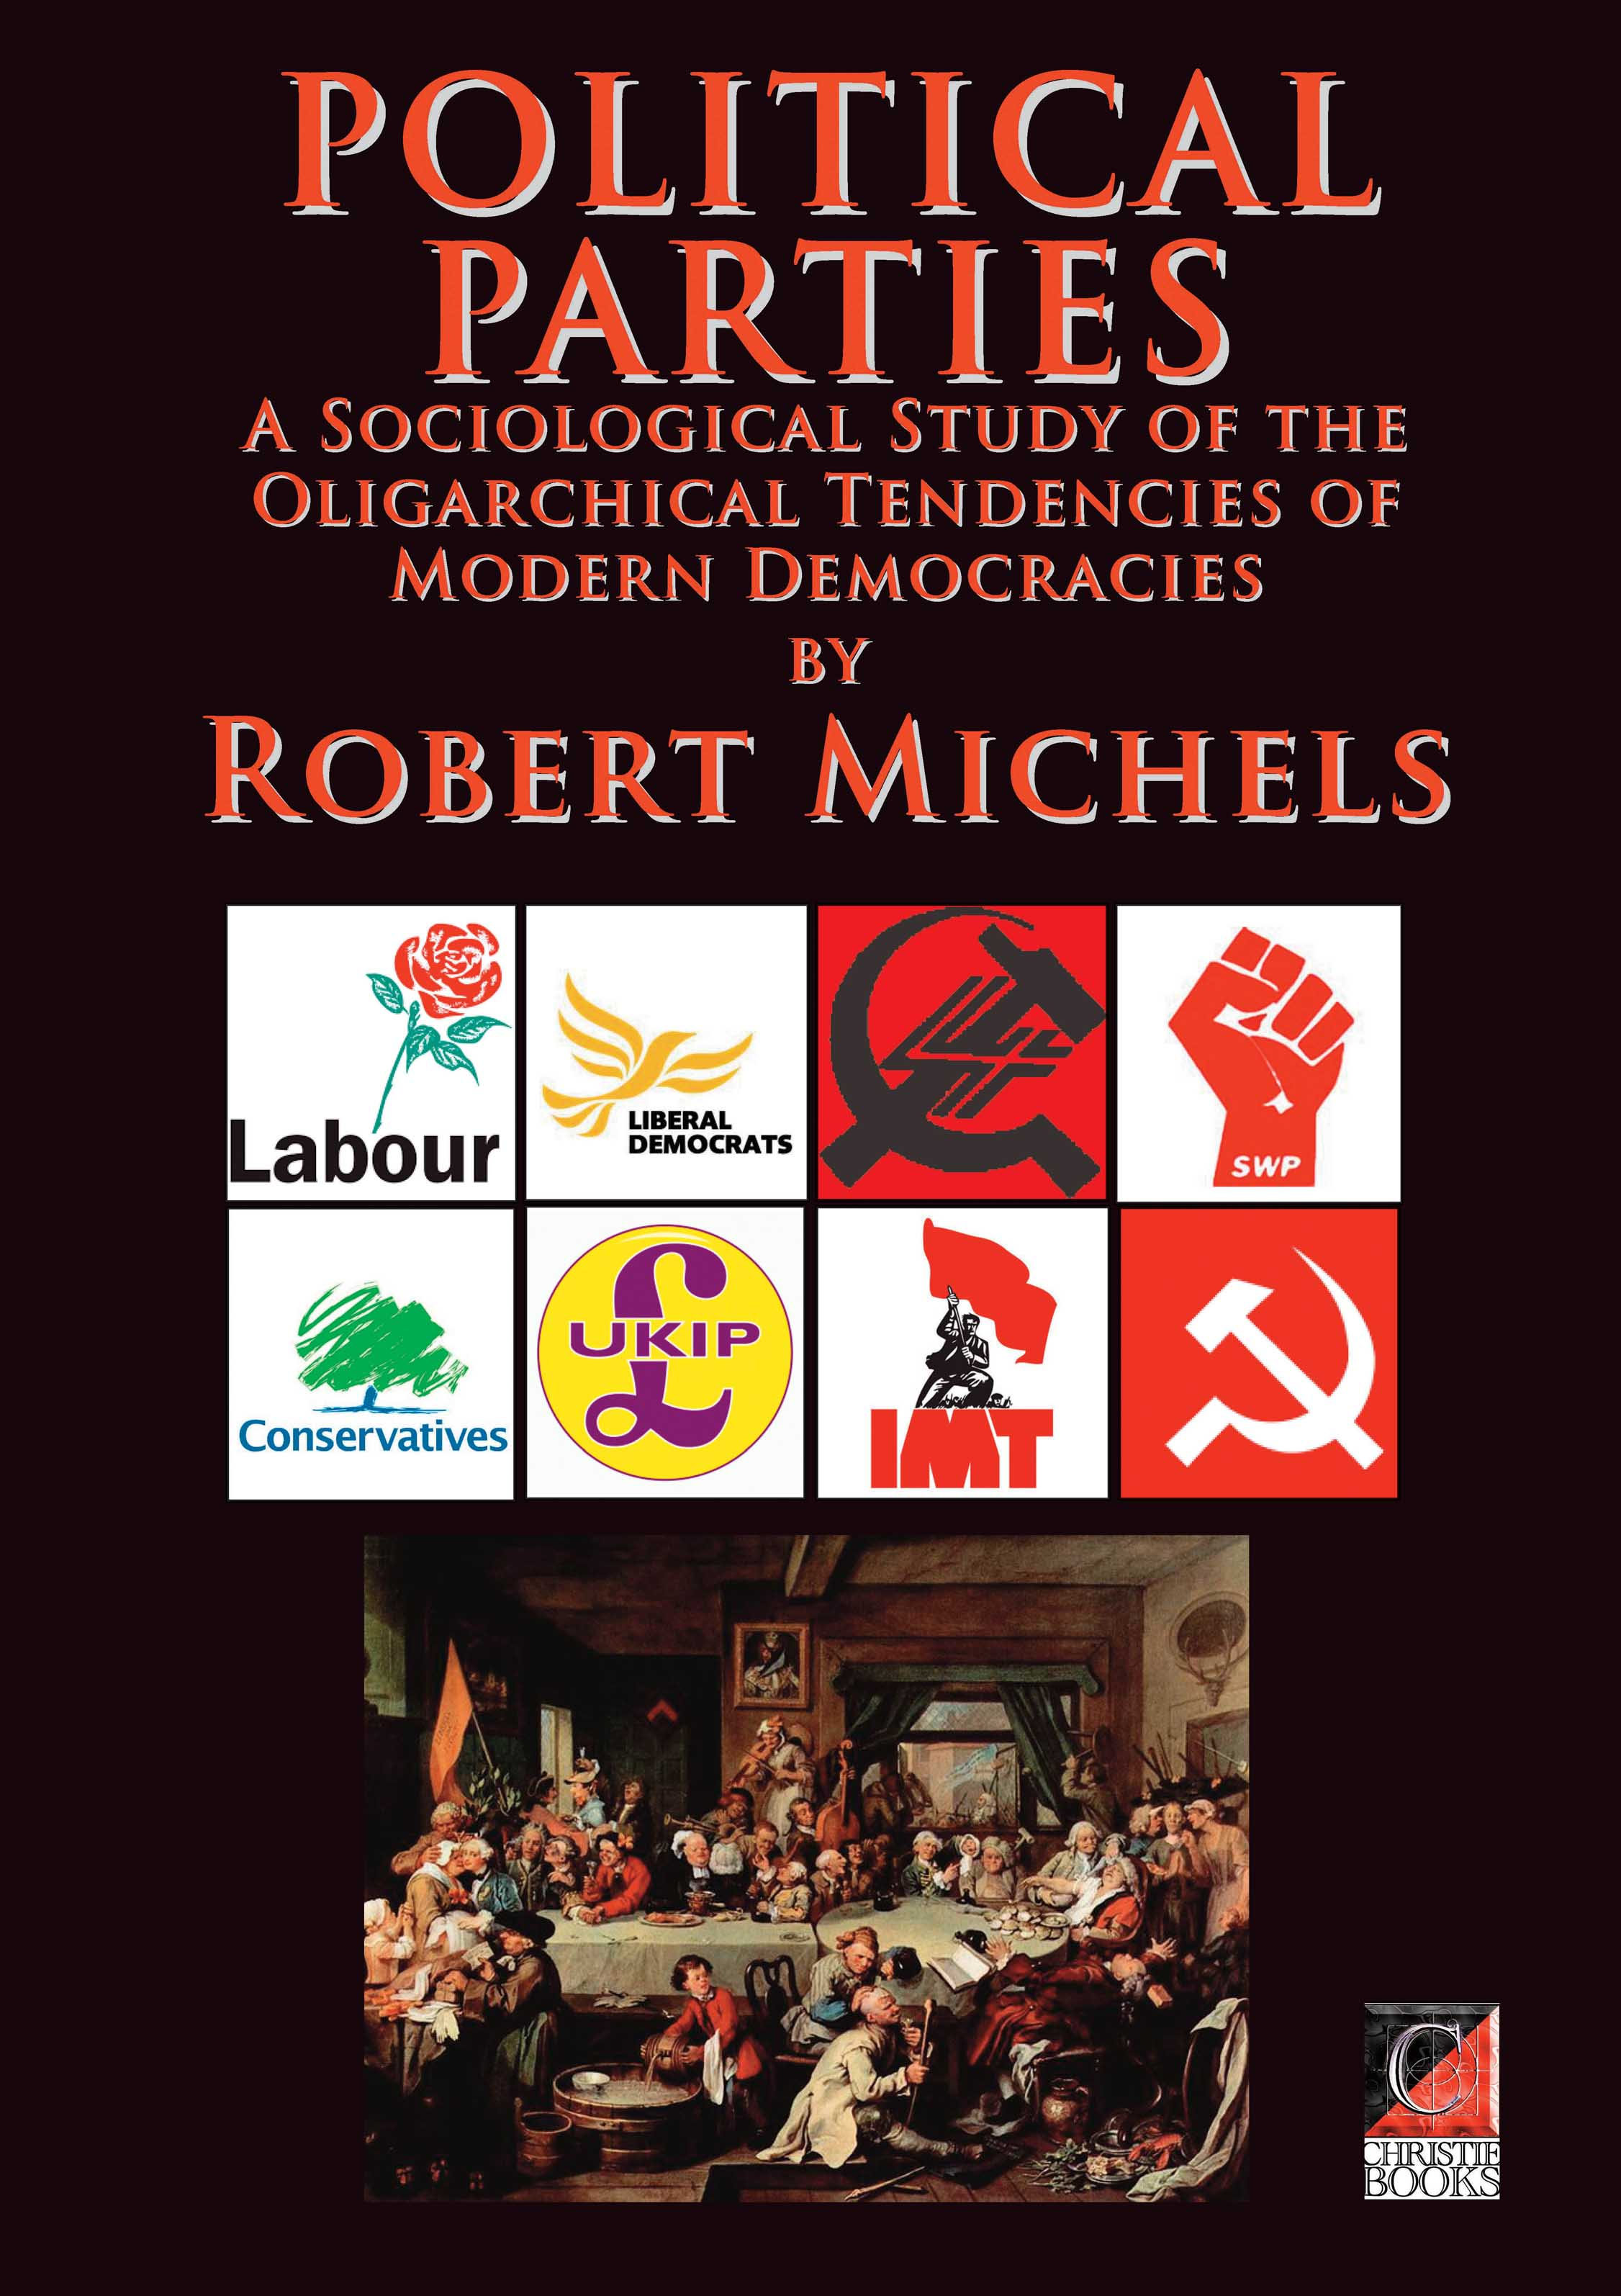 POLITICAL PARTIES A Sociological Study of the Oligarchical Tendencies of Modern Democracies